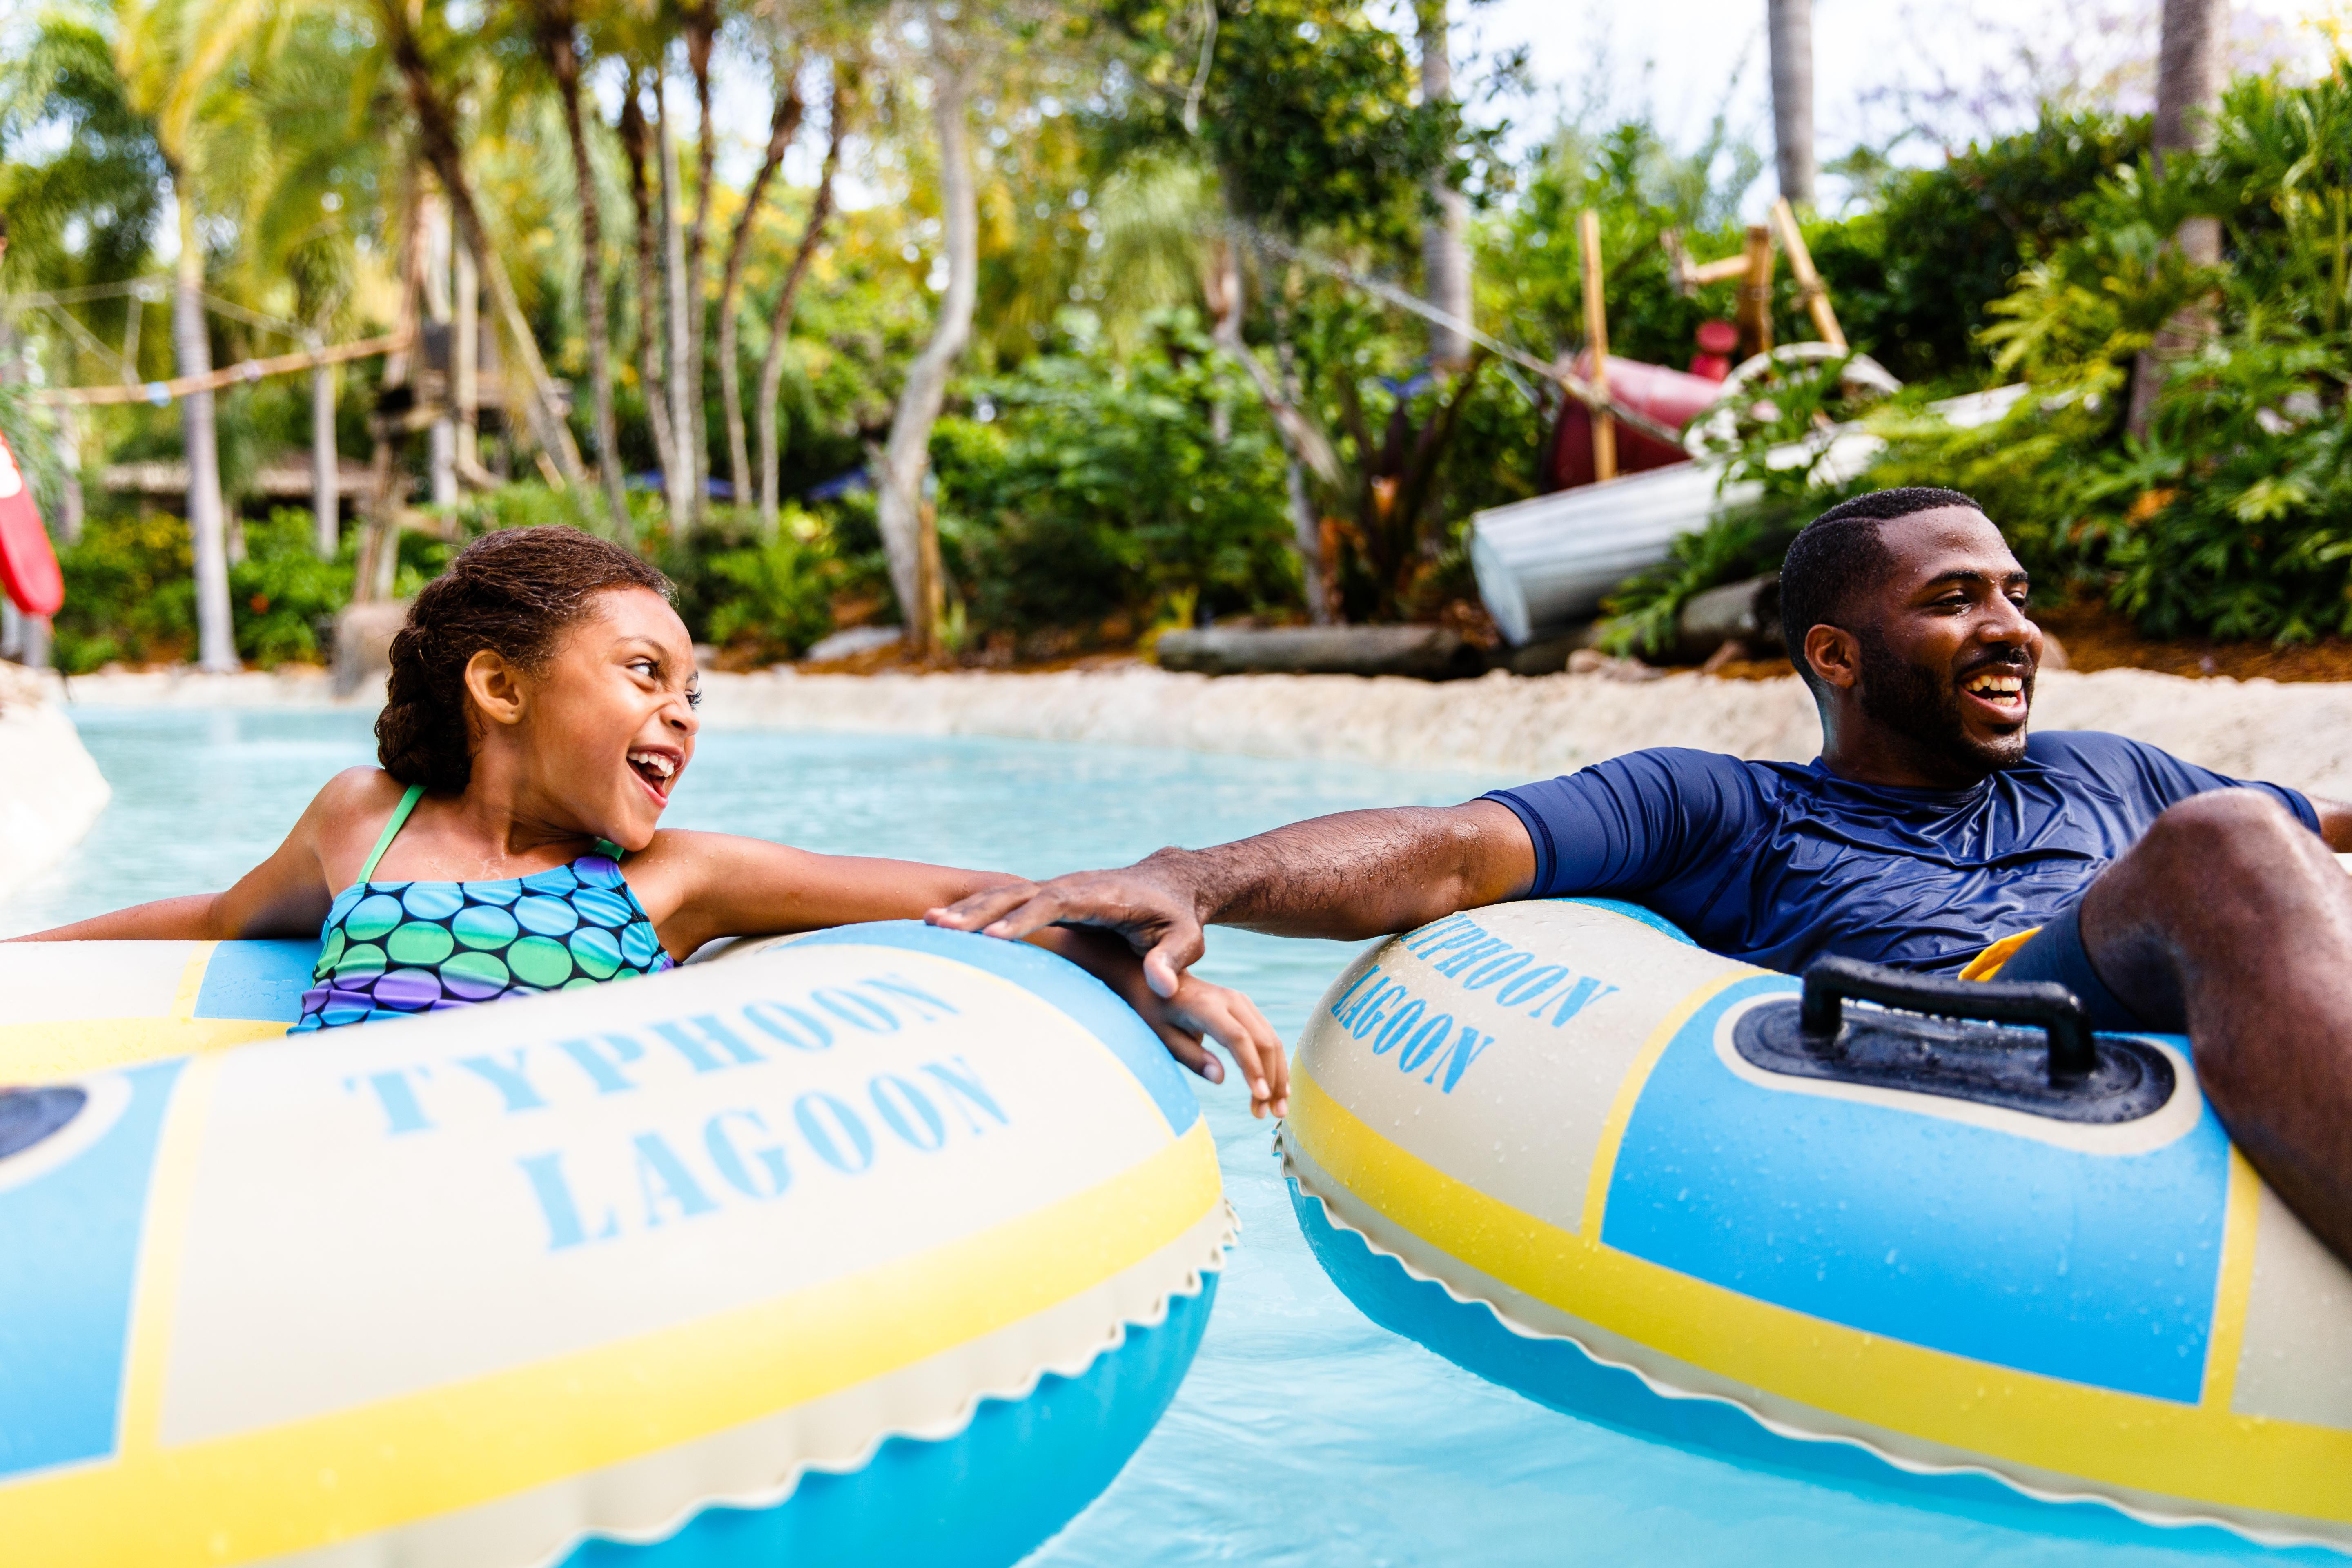 Father and daughter floating down Castway Creek together at Disney's Typhoon Lagoon